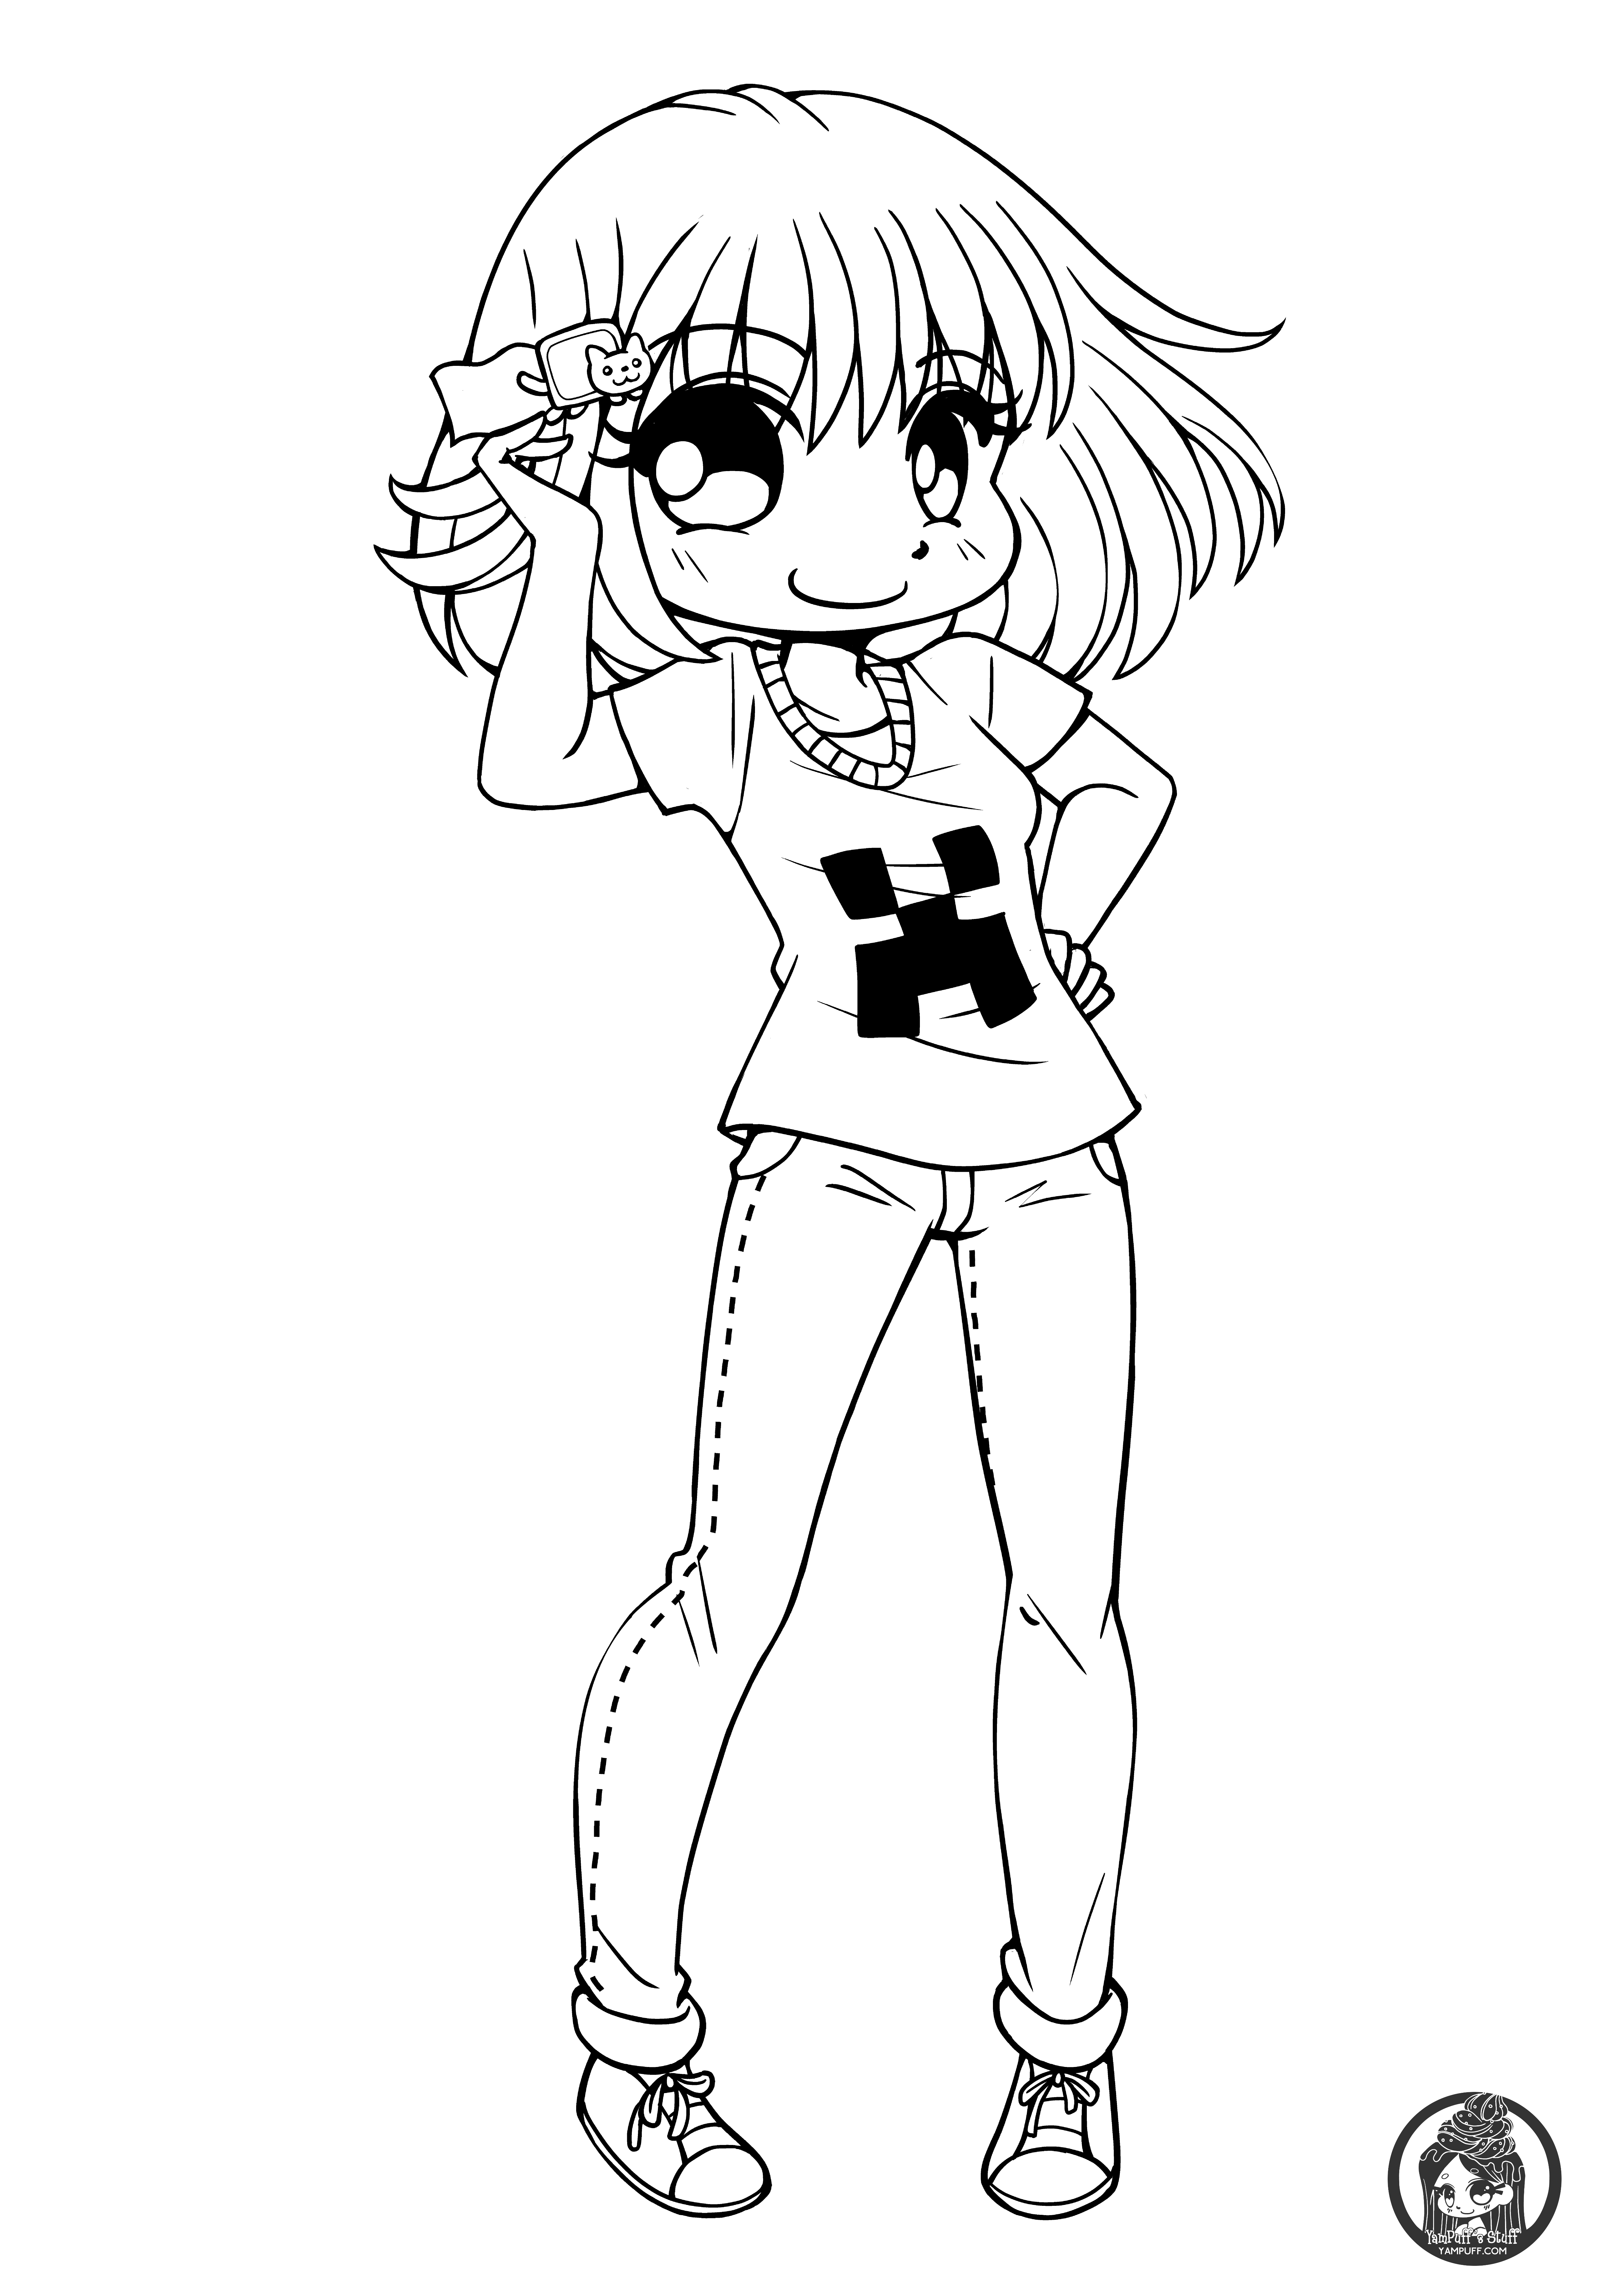 cute chibi girl coloring pages anime chibi cute girl coloring page wecoloringpagecom coloring chibi girl cute pages